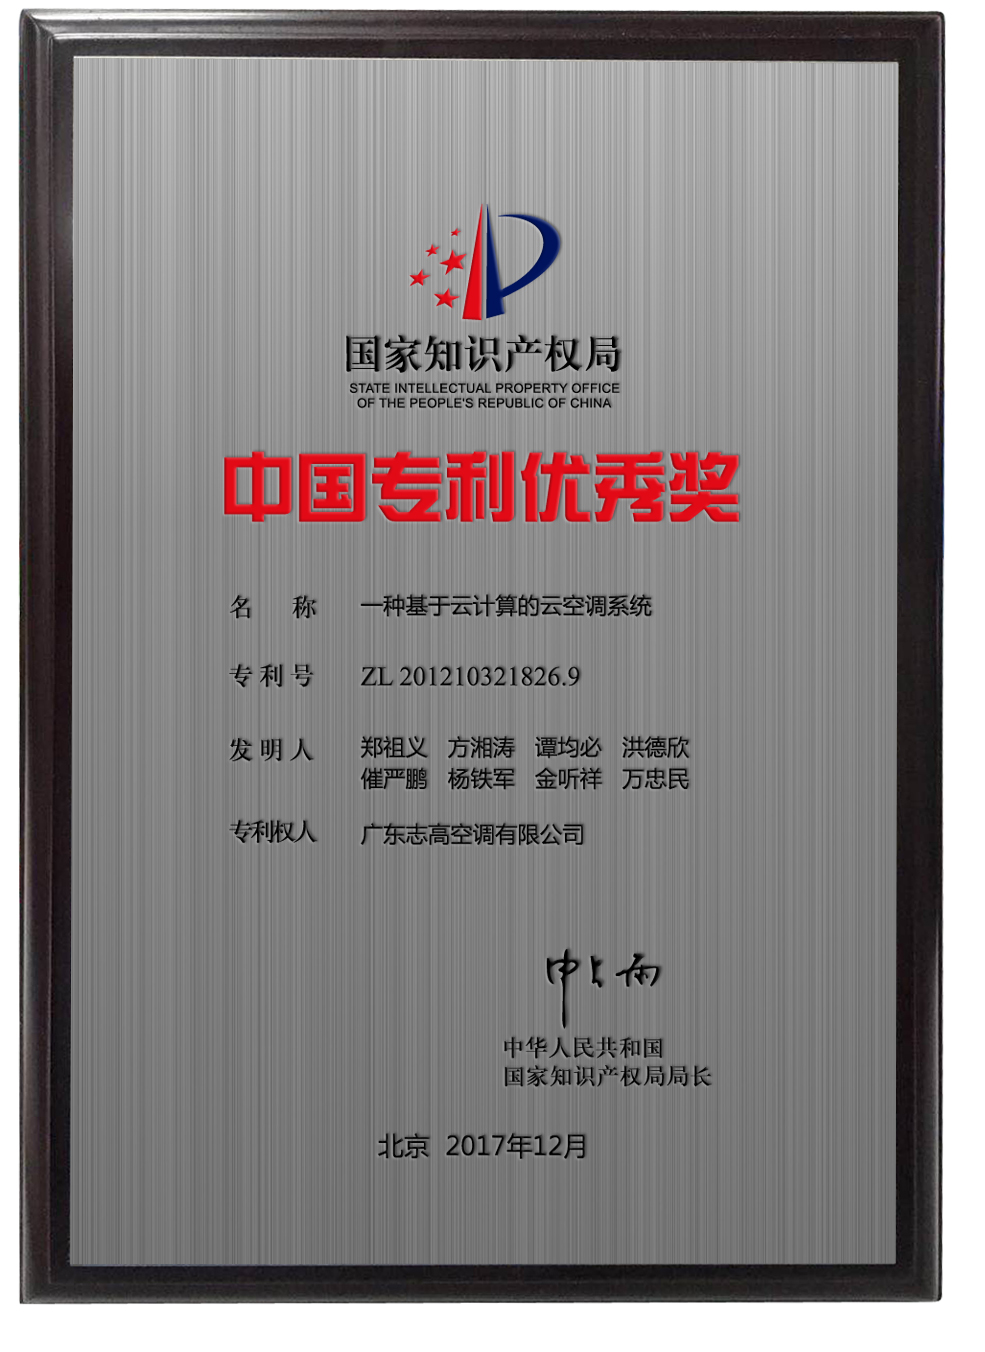 19th China Patent Excellence Award